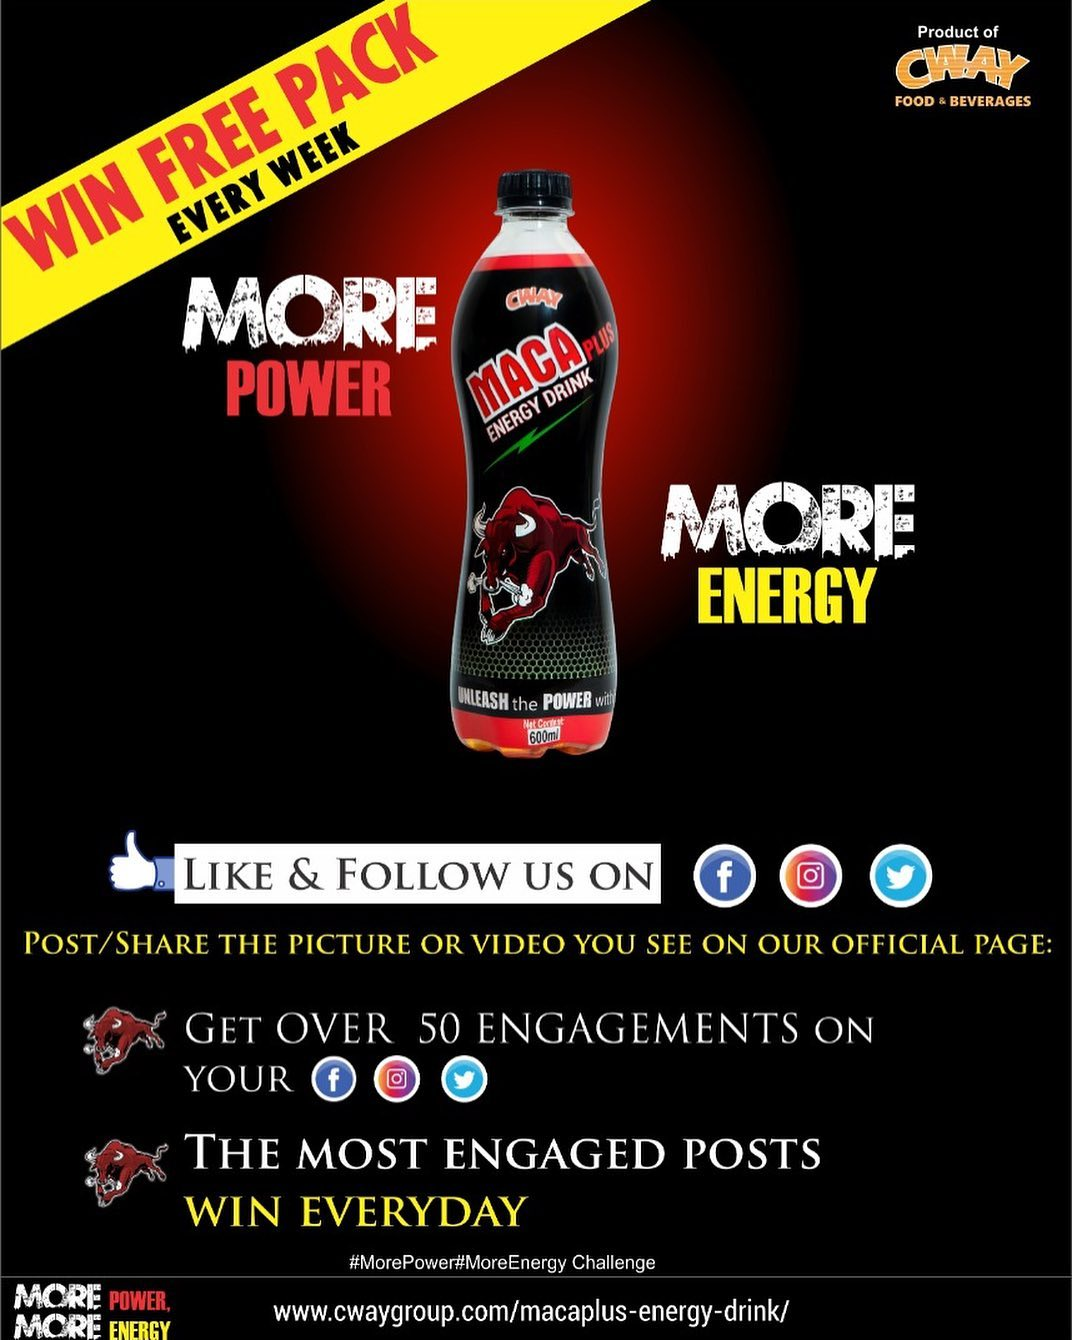 Join the #MorePowerMoreEnergy Challenge and Win Free Packs.